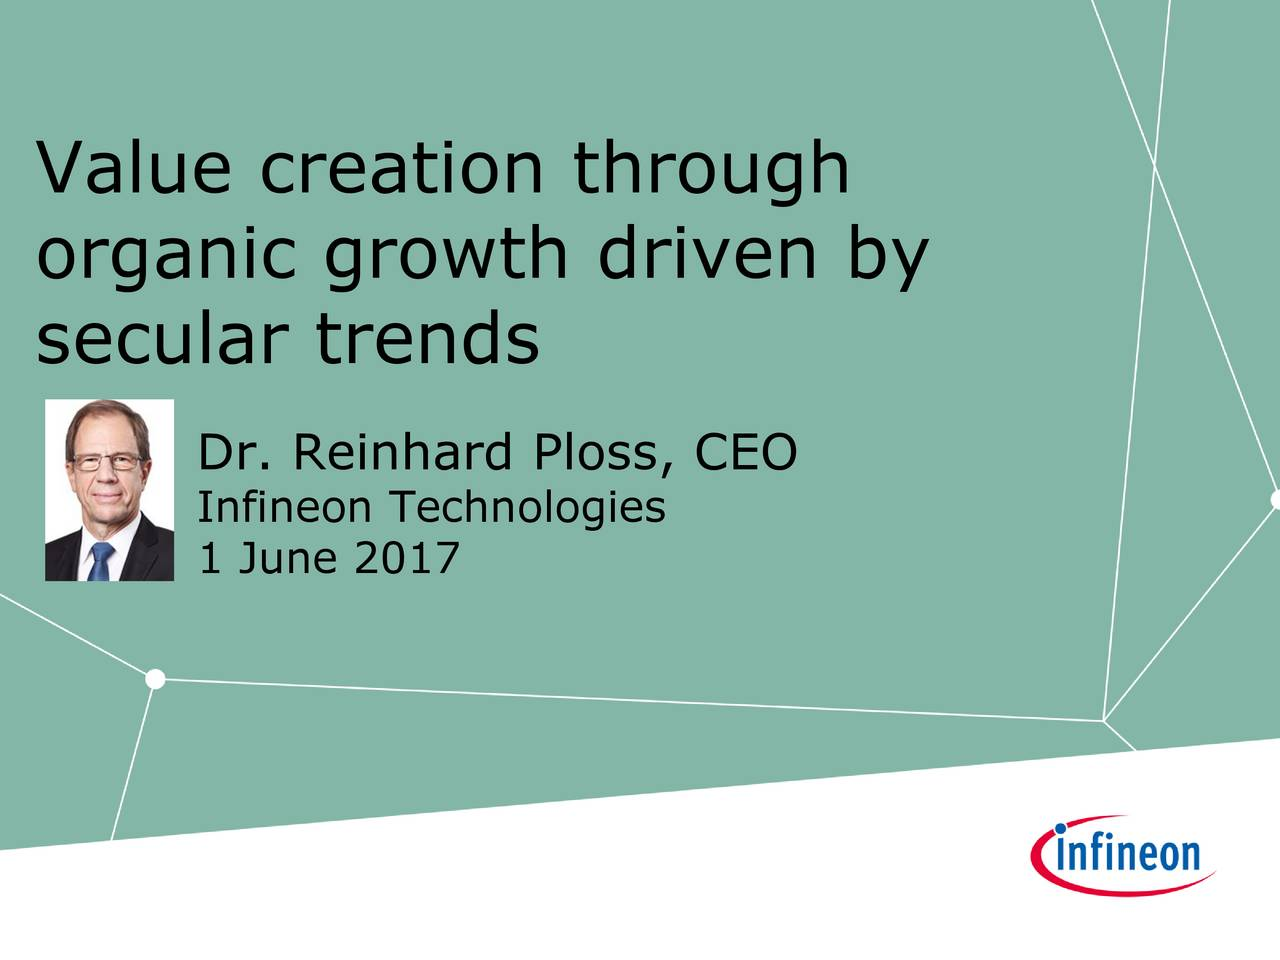 organic growth driven by secular trends Dr. Reinhard Ploss, CEO Infineon Technologies 1 June 2017